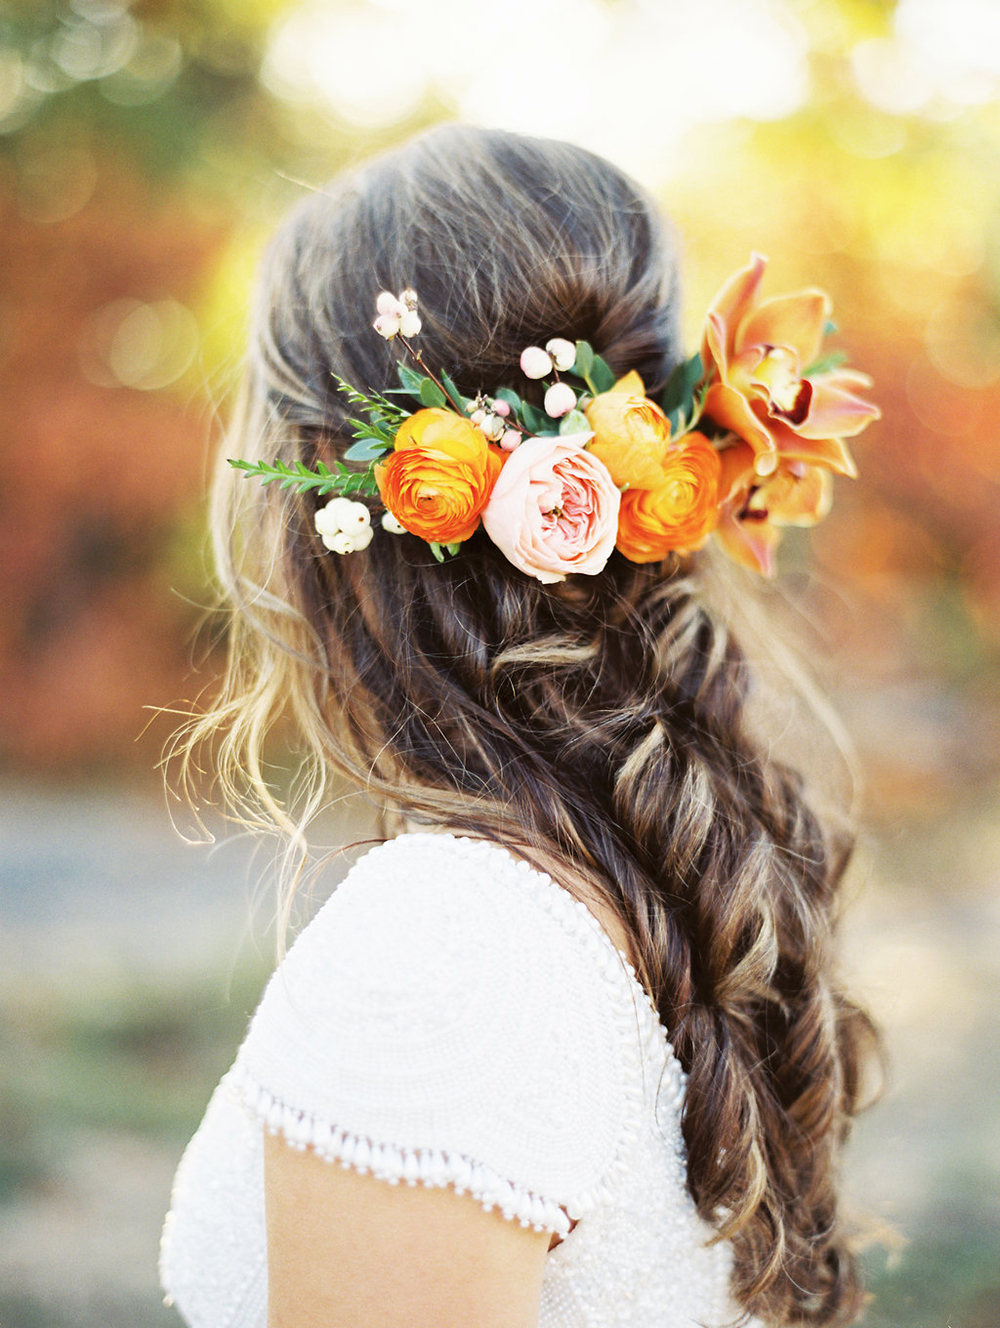 wedding hair with flowers - photo by Evelyn Barkey Photography http://ruffledblog.com/romantic-elopement-inspiration-with-rich-colors